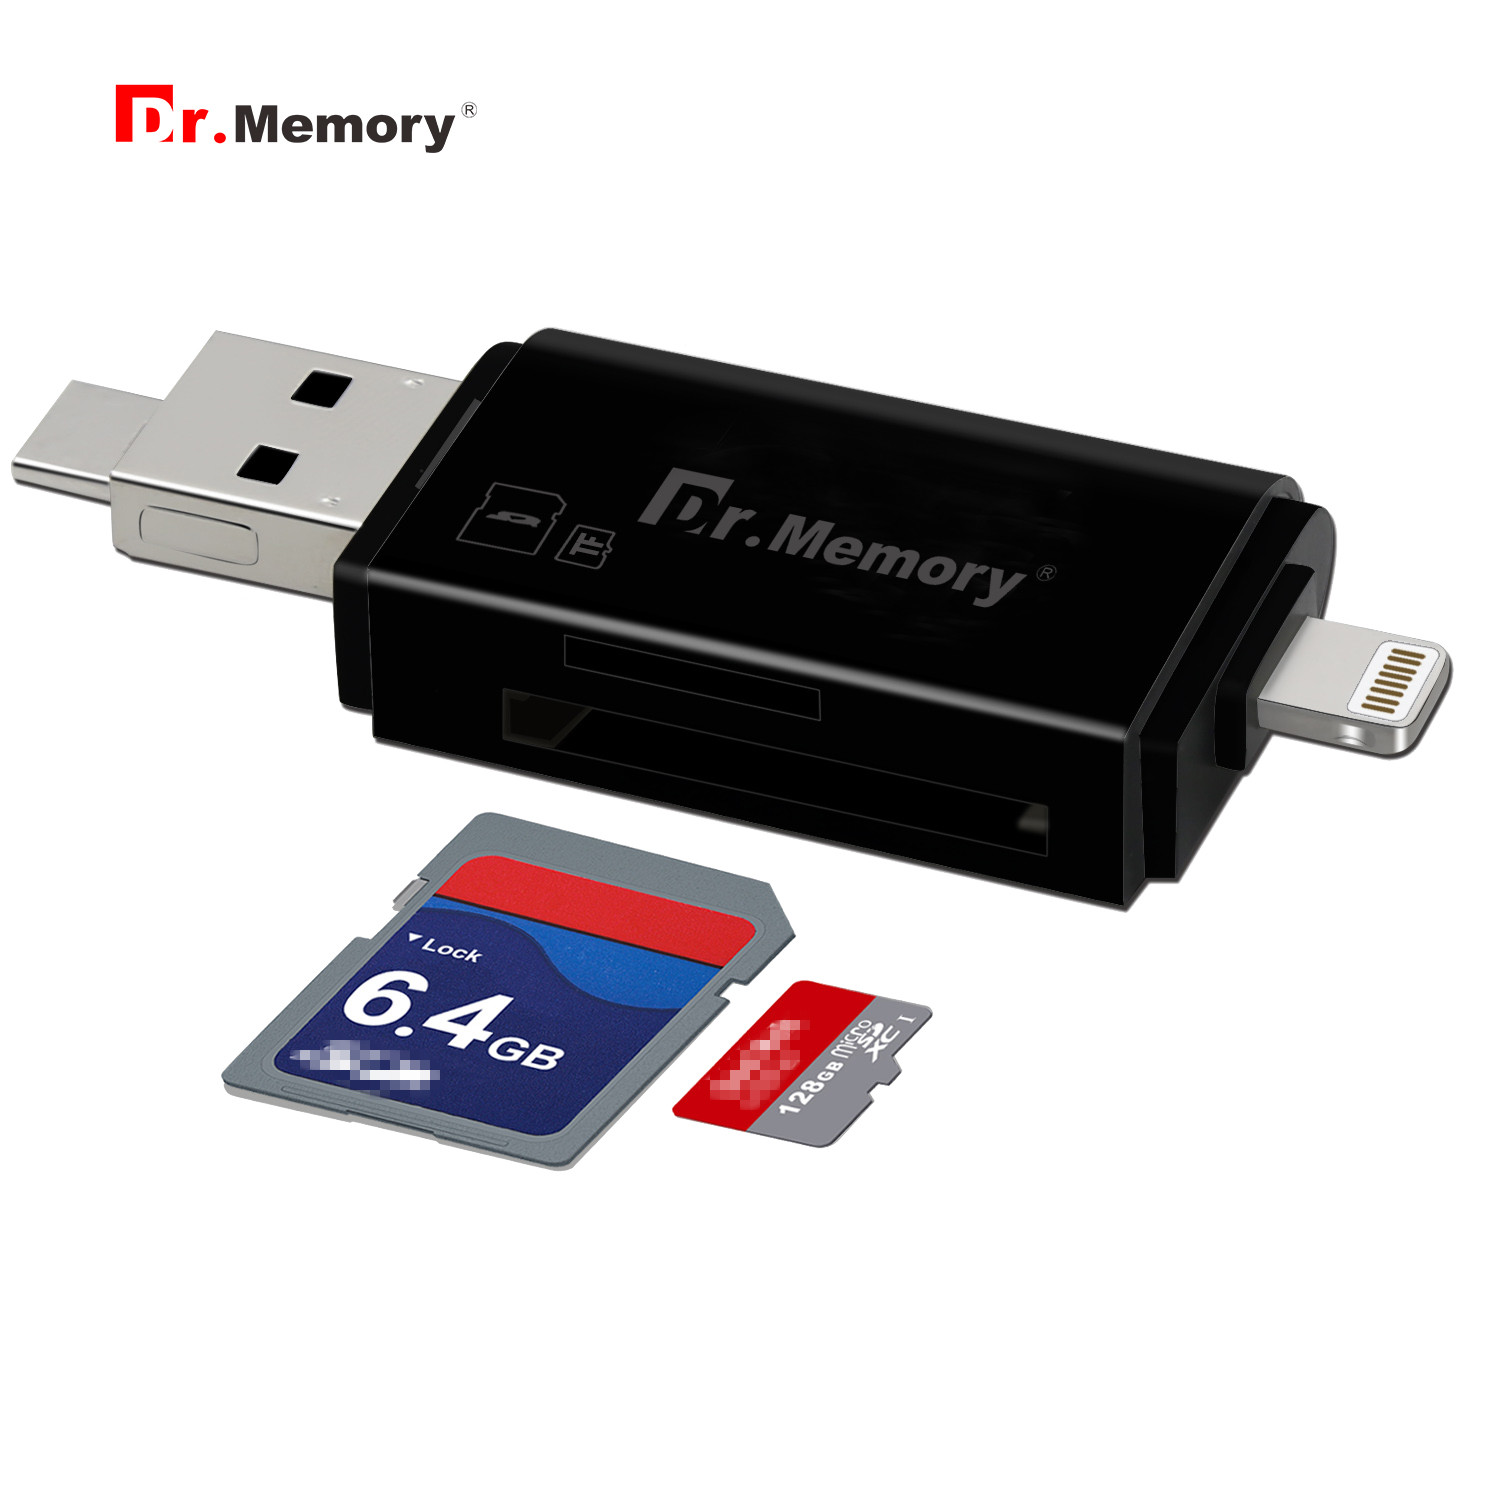 Dr.Memory 3 in 1 Memory Card Reader For Lightning/Micro/USB 2.0 Micro SD Card/TF Card OTG Reader For</